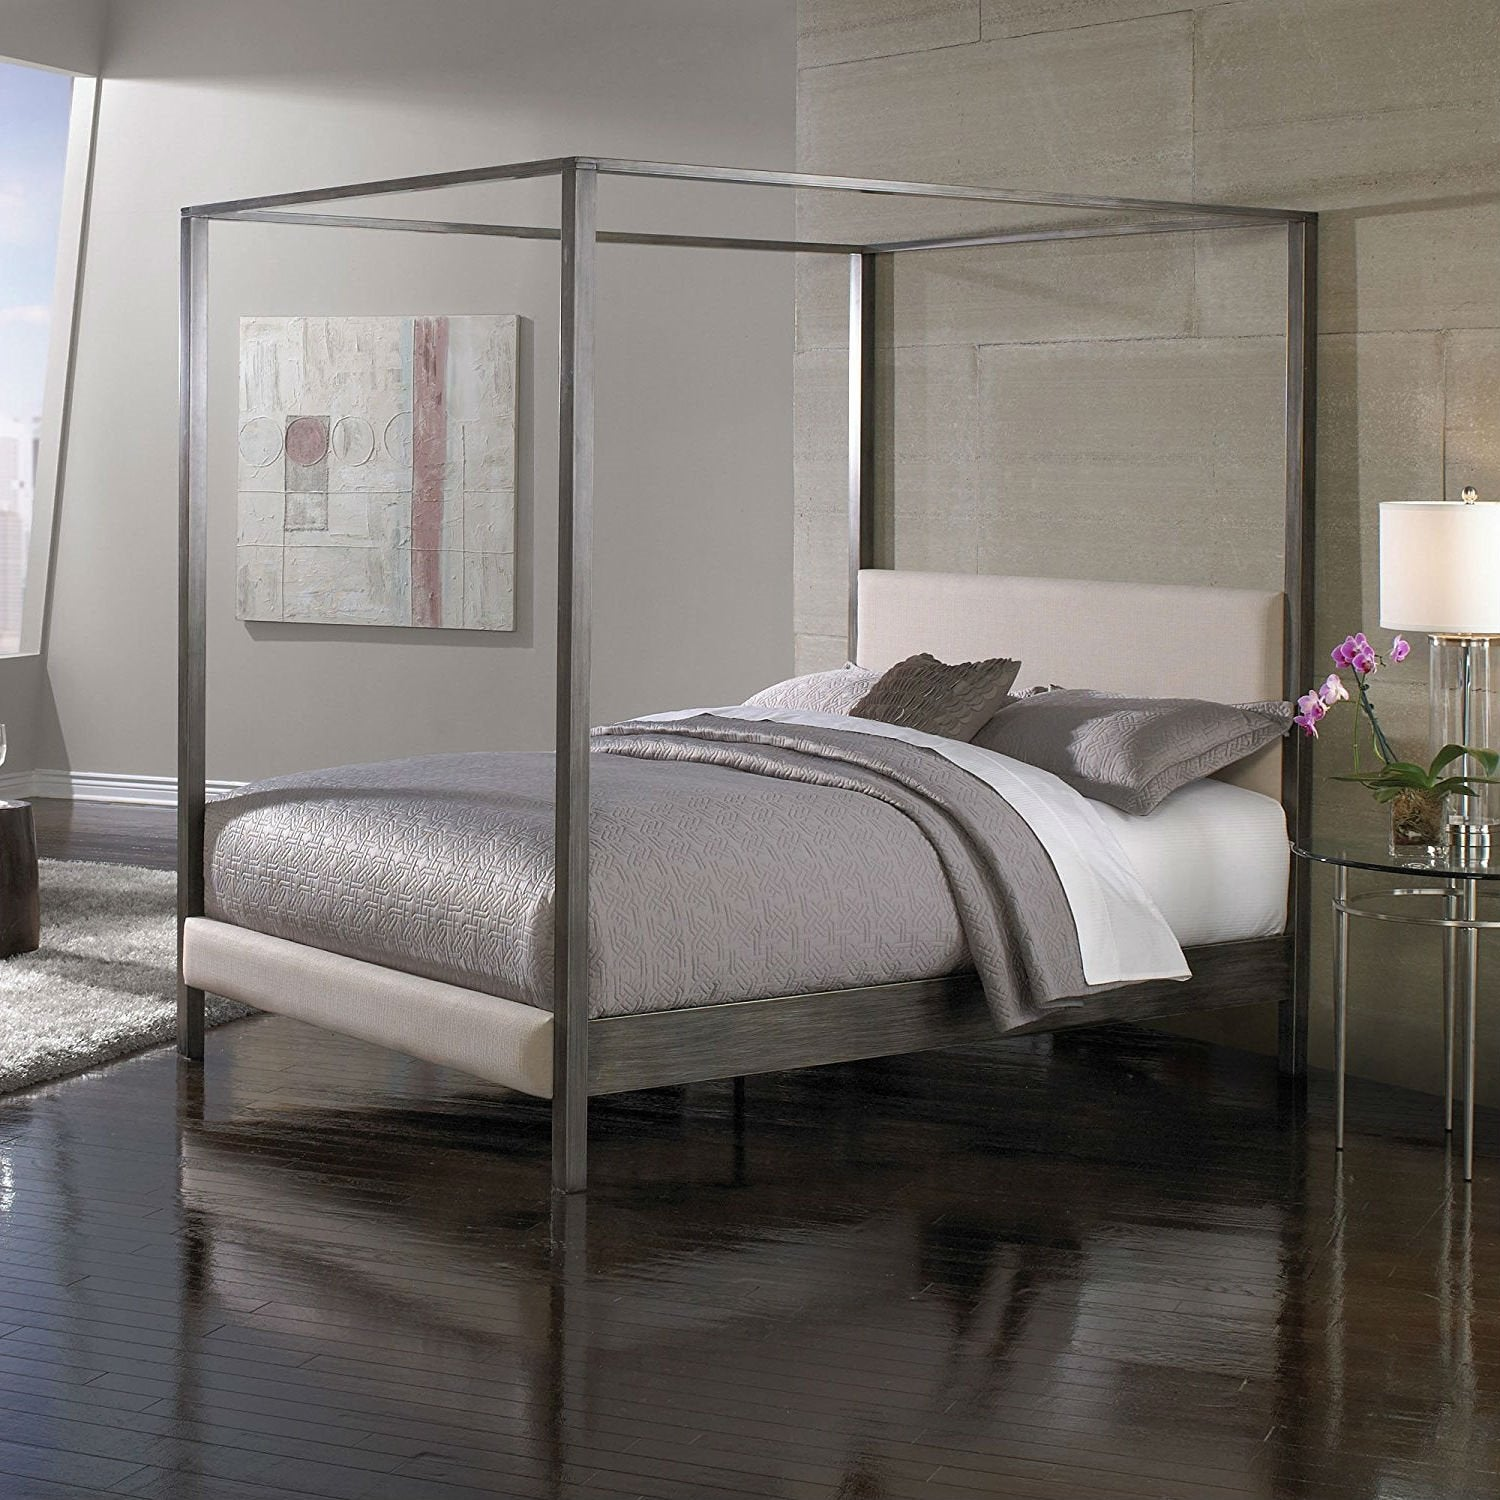 - King Size Upholstered Canopy Bed Frame With Wood Slats In Platinum